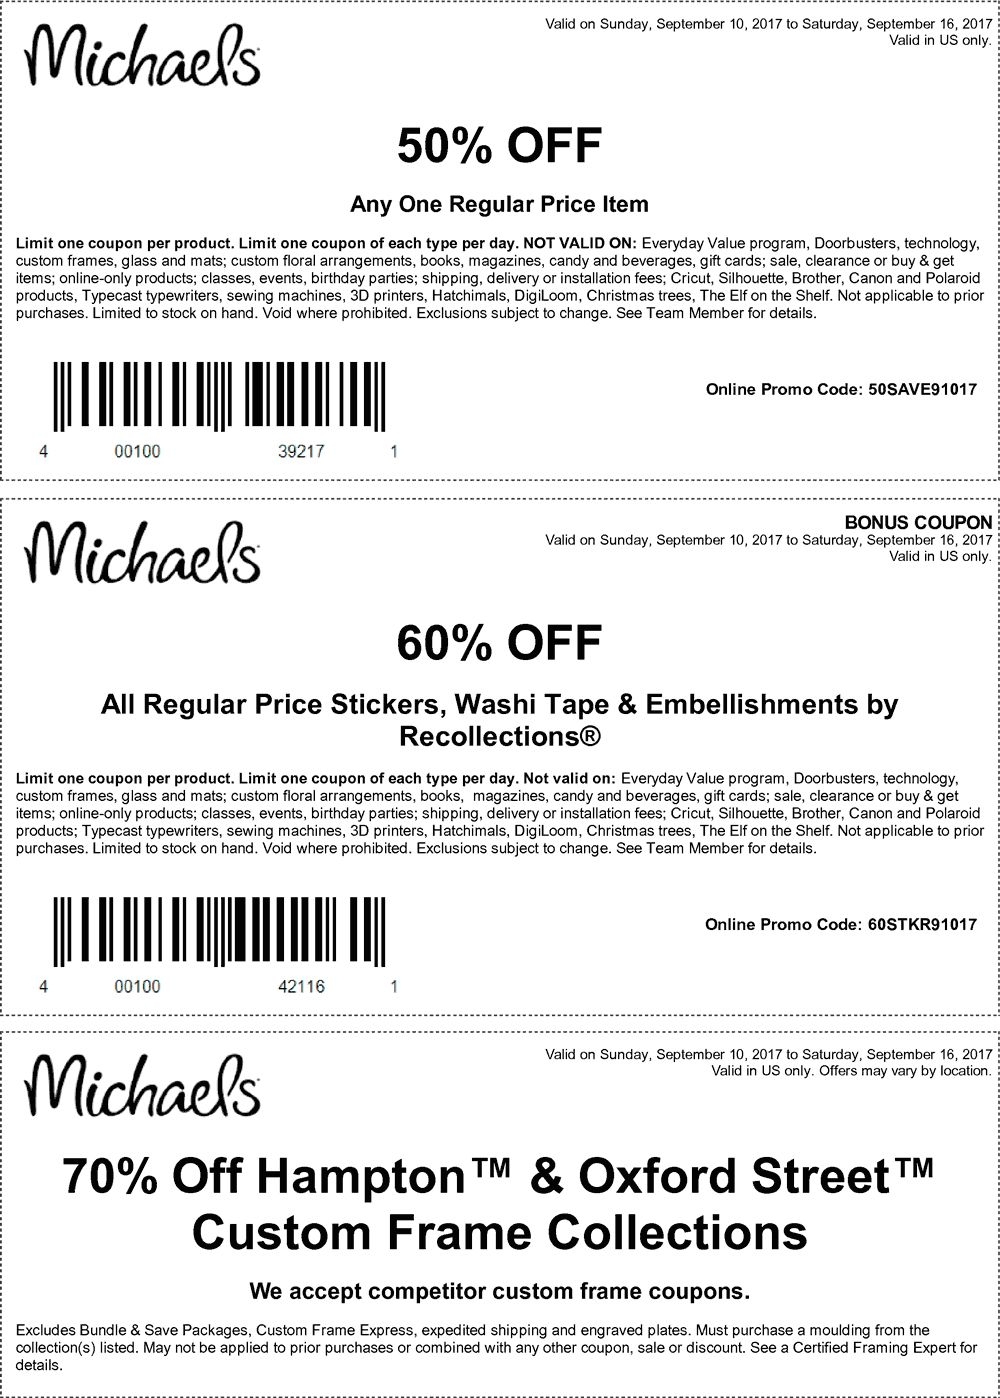 50% off a single item at Michaels, or online via promo code ...